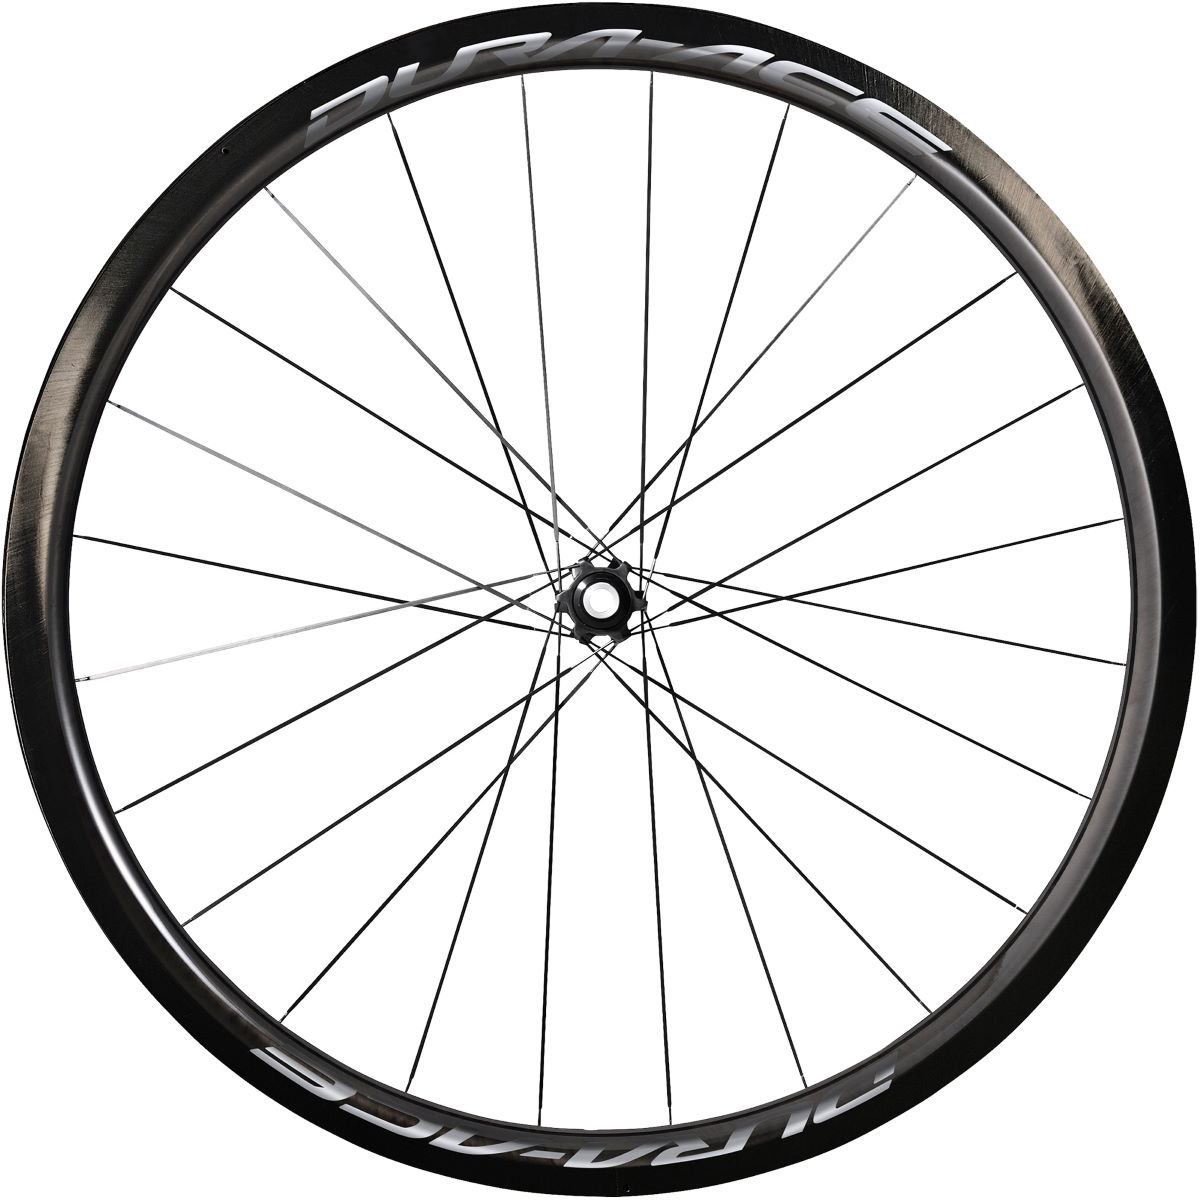 Roue avant Shimano Dura Ace R9170 C40 (carbone, disque) - 12mmx100mm